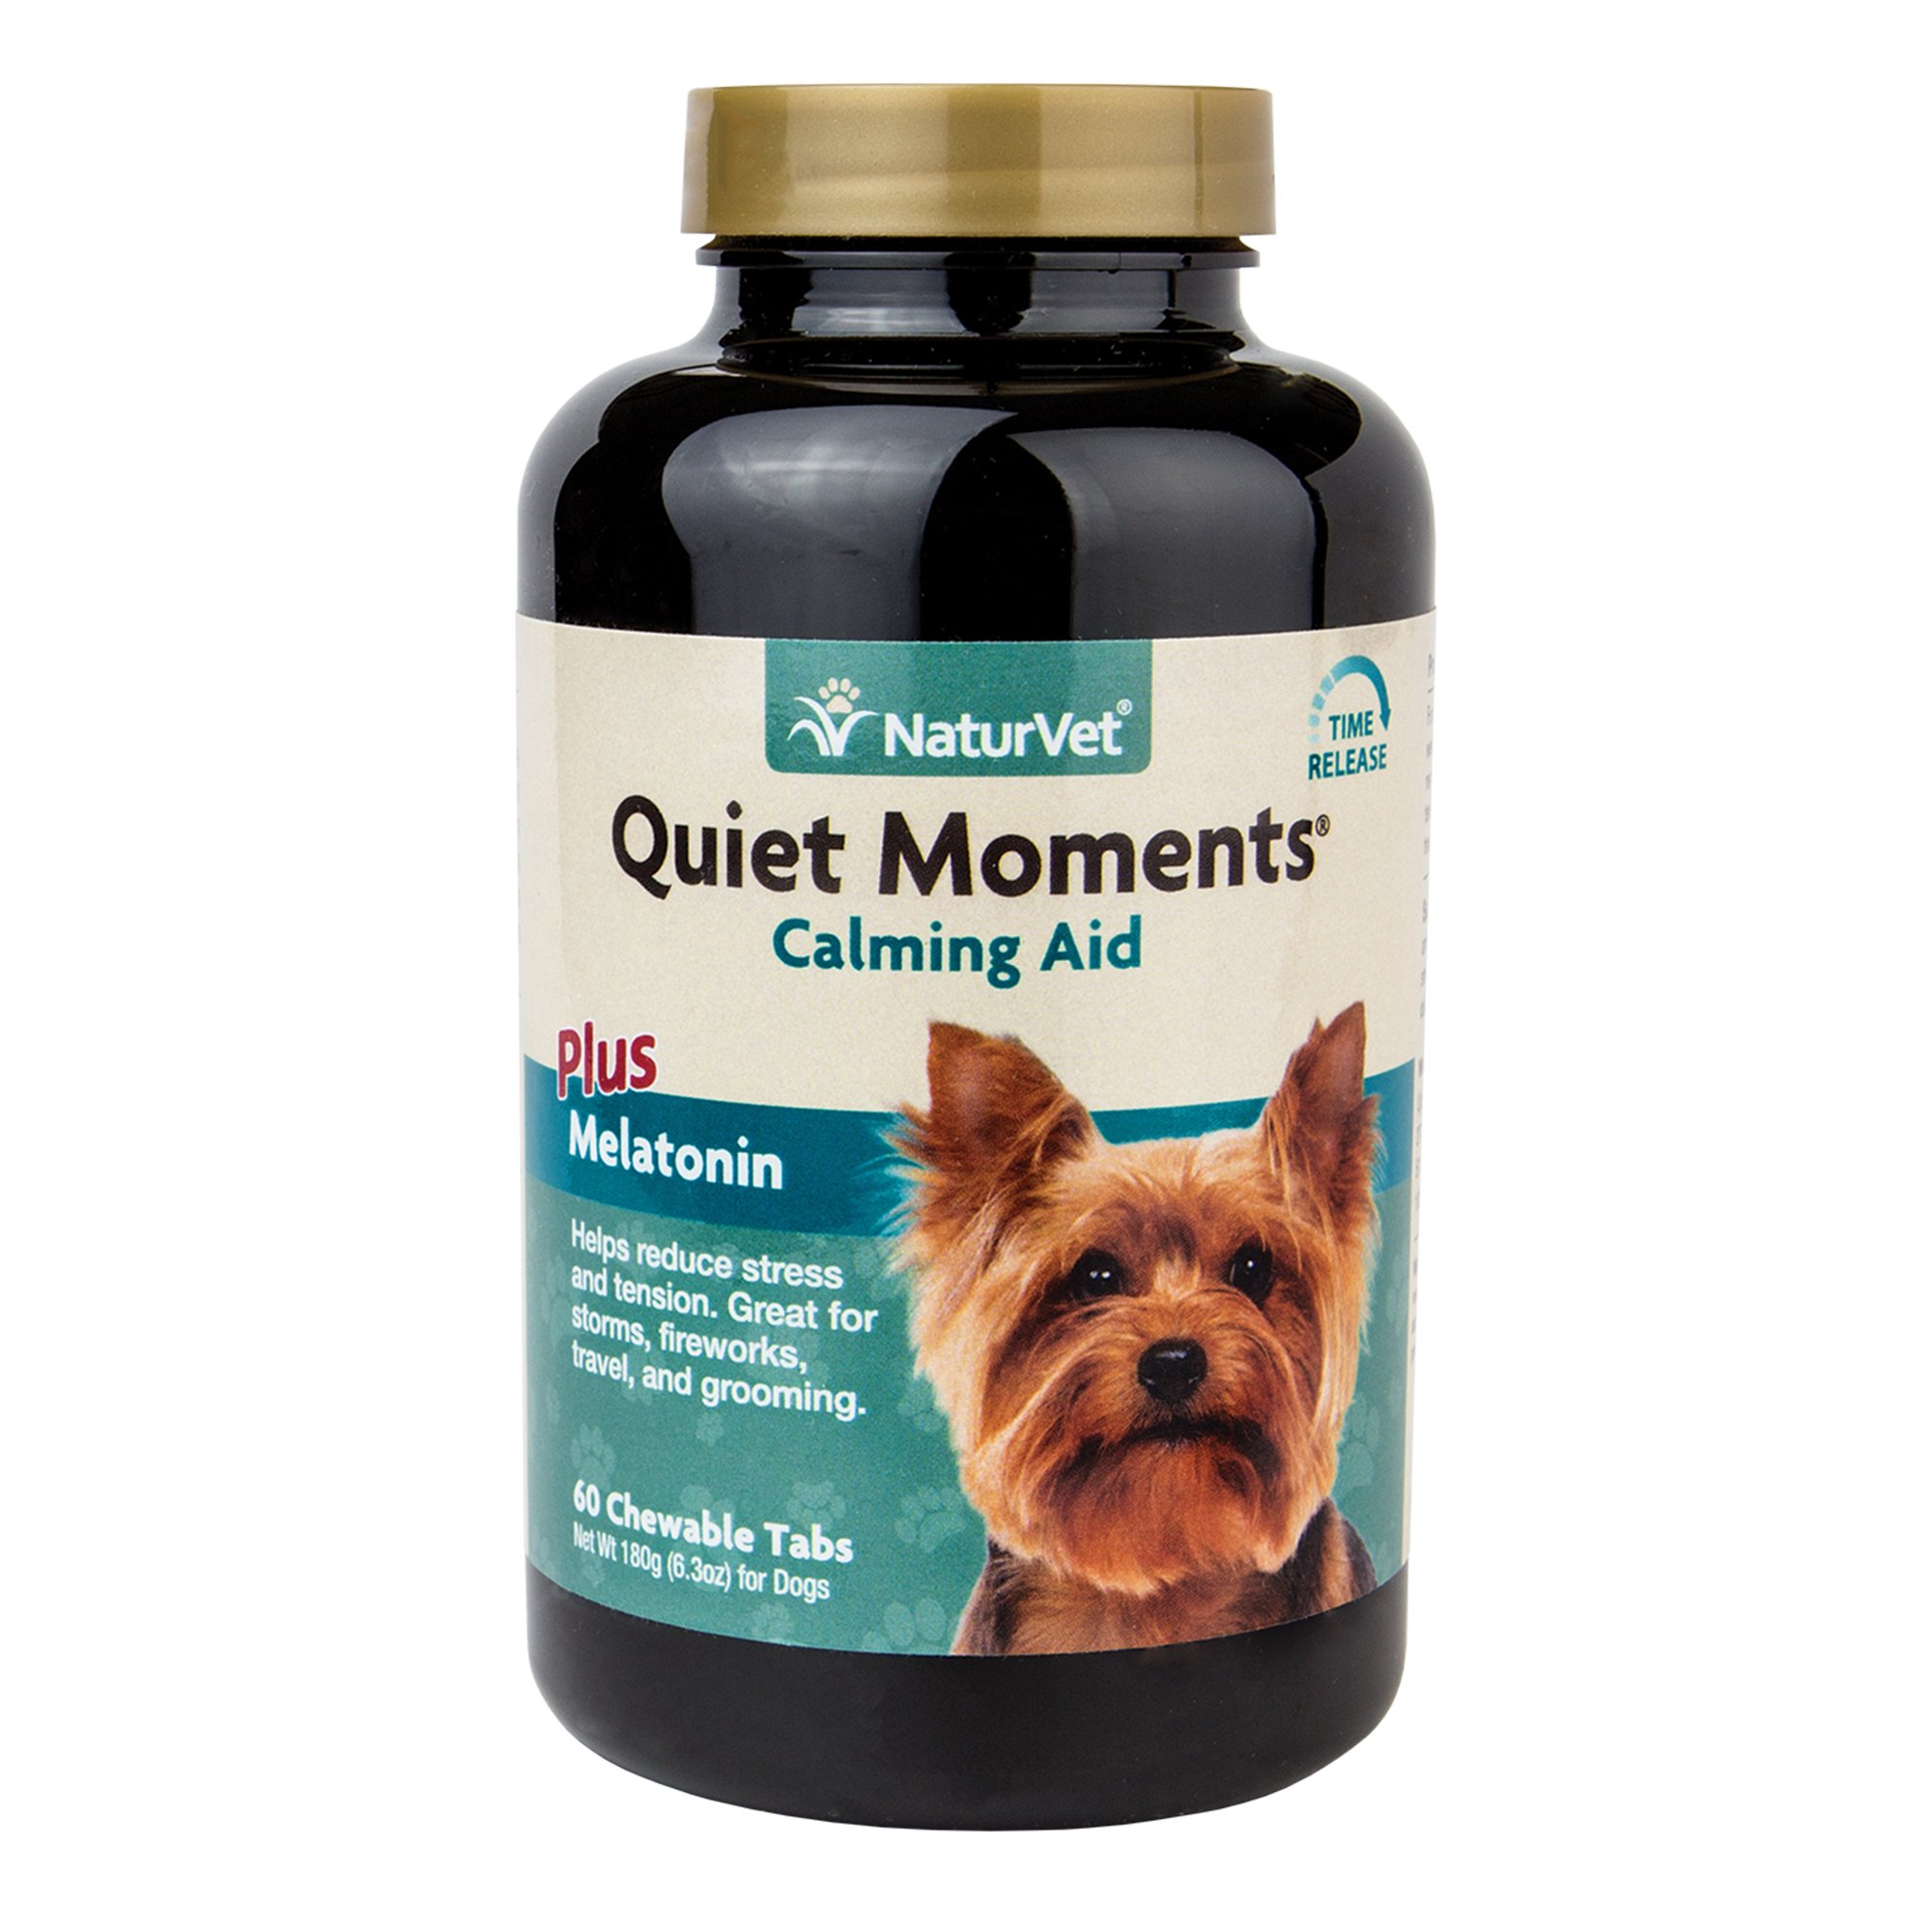 Quiet Moments Calming Aid Supplement Tablets for Dogs, Reduce Stress and Anxiety with this Veterinarian formulated calming supplement by NaturVet 60 count